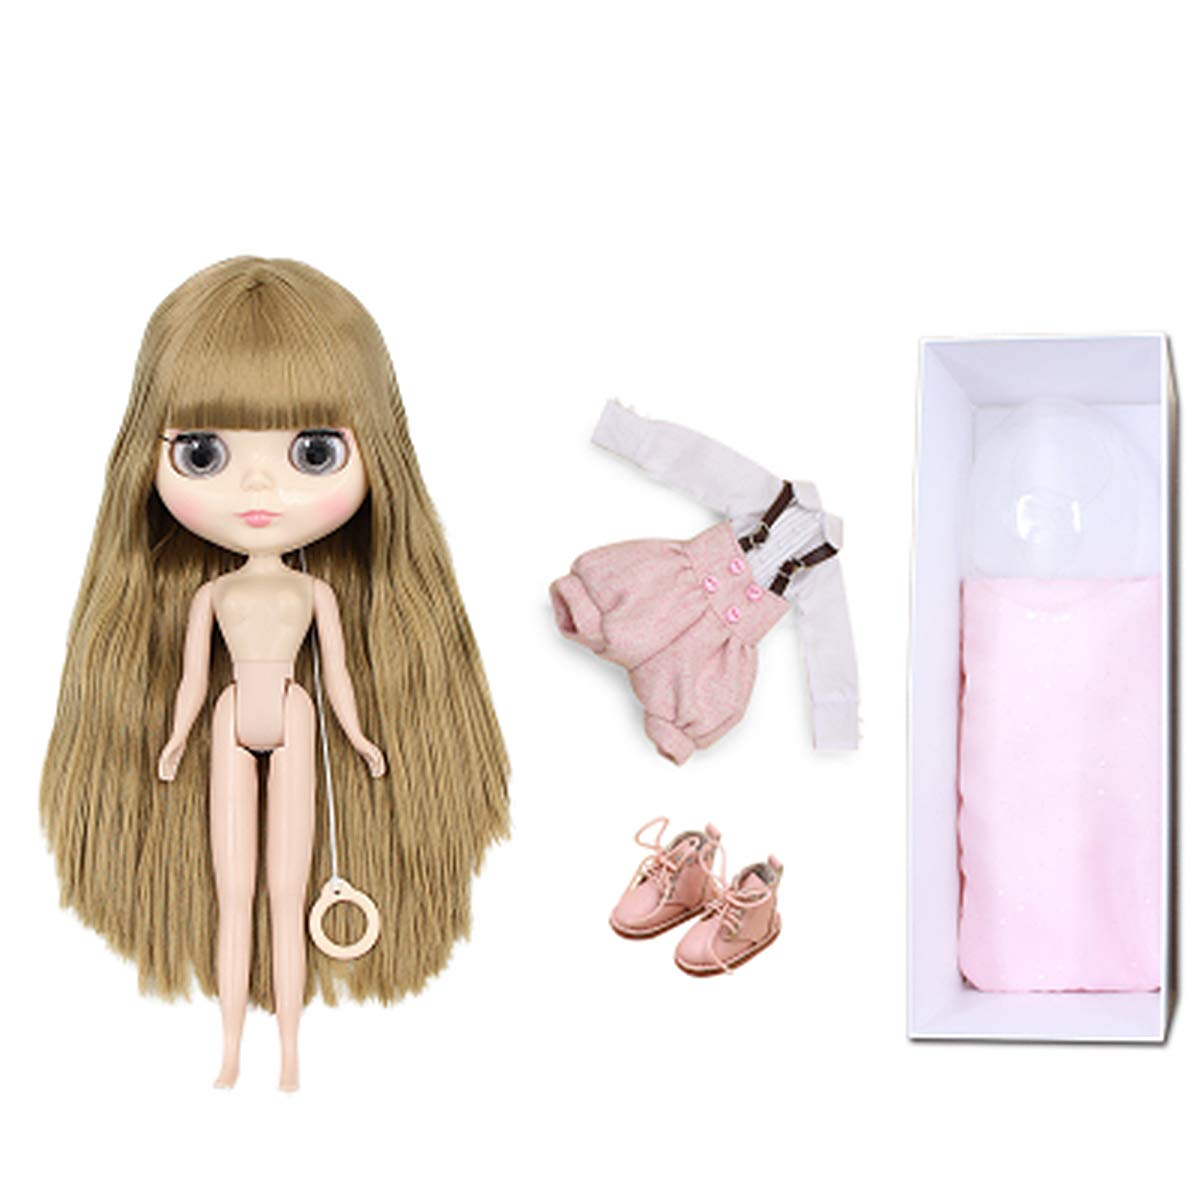 rosecourtes 7joints Aegilmc BJD Dolls Blythe Puppet, mode 1 6 SD 30Cm Ball Jointed Body Dolls, Blond Replaceable Big Eyes Hand Reborn Toy Surprise DIY Gift Make Up,bleucourtes,19joints